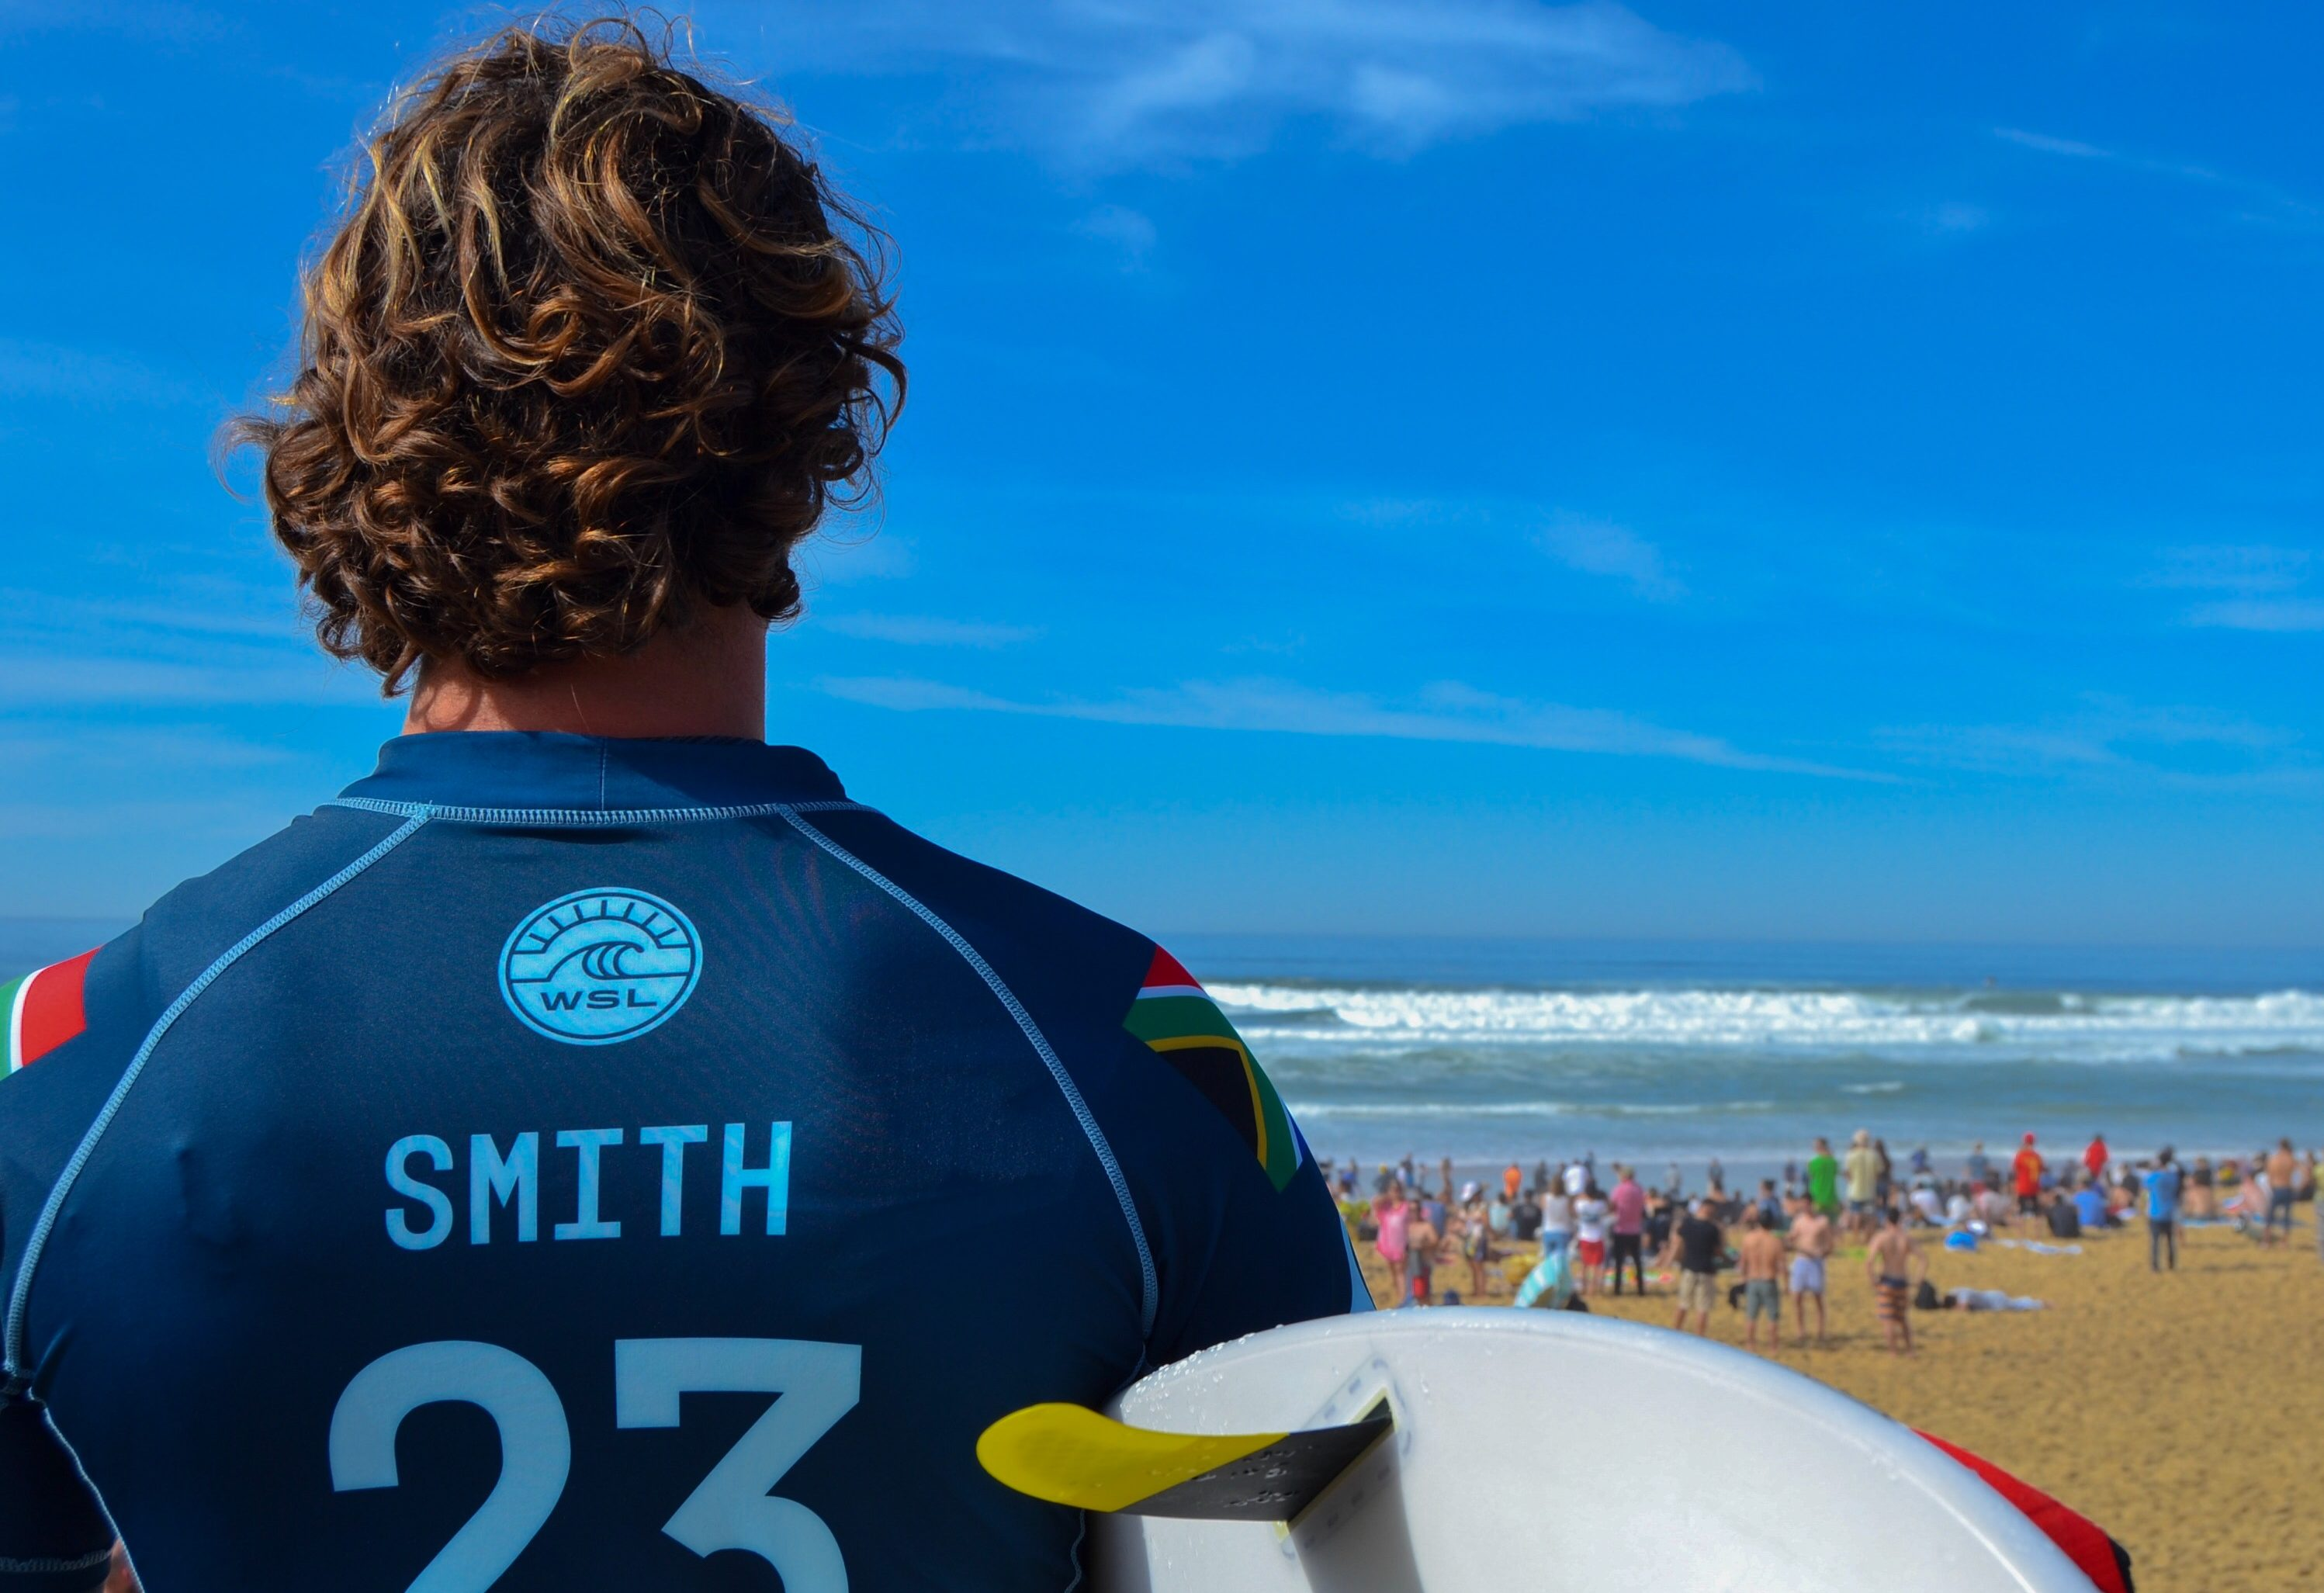 quiksilver-pro-france-roxy-pro-france-surf-quik-pro-roxy-pro-hossegor-culs-nuls-jordy-smith-landes-wsl-vagues-world-surf-league-les-ptits-touristes-blog-voyage